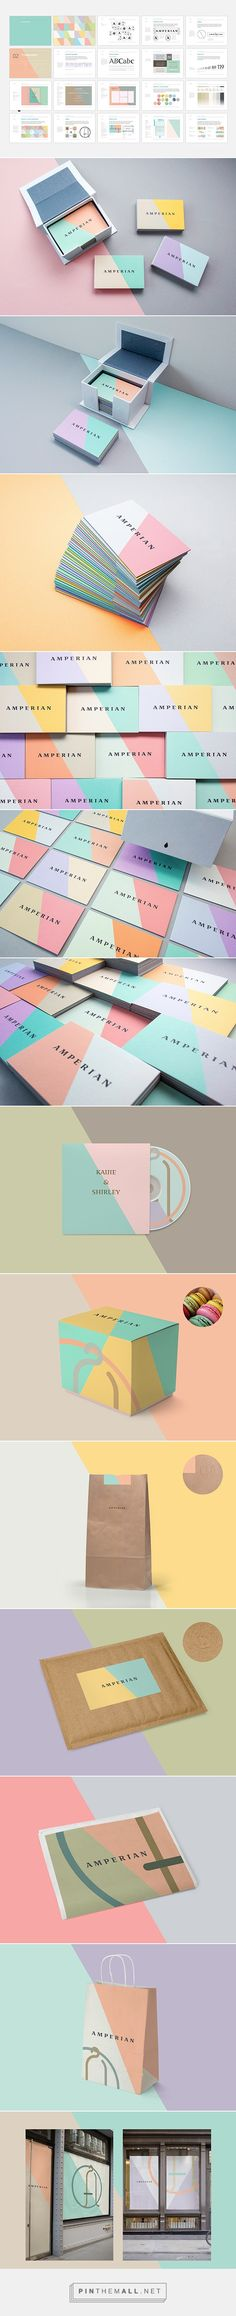 Color blocking #stationary design. Love the business cards and packaging especially.